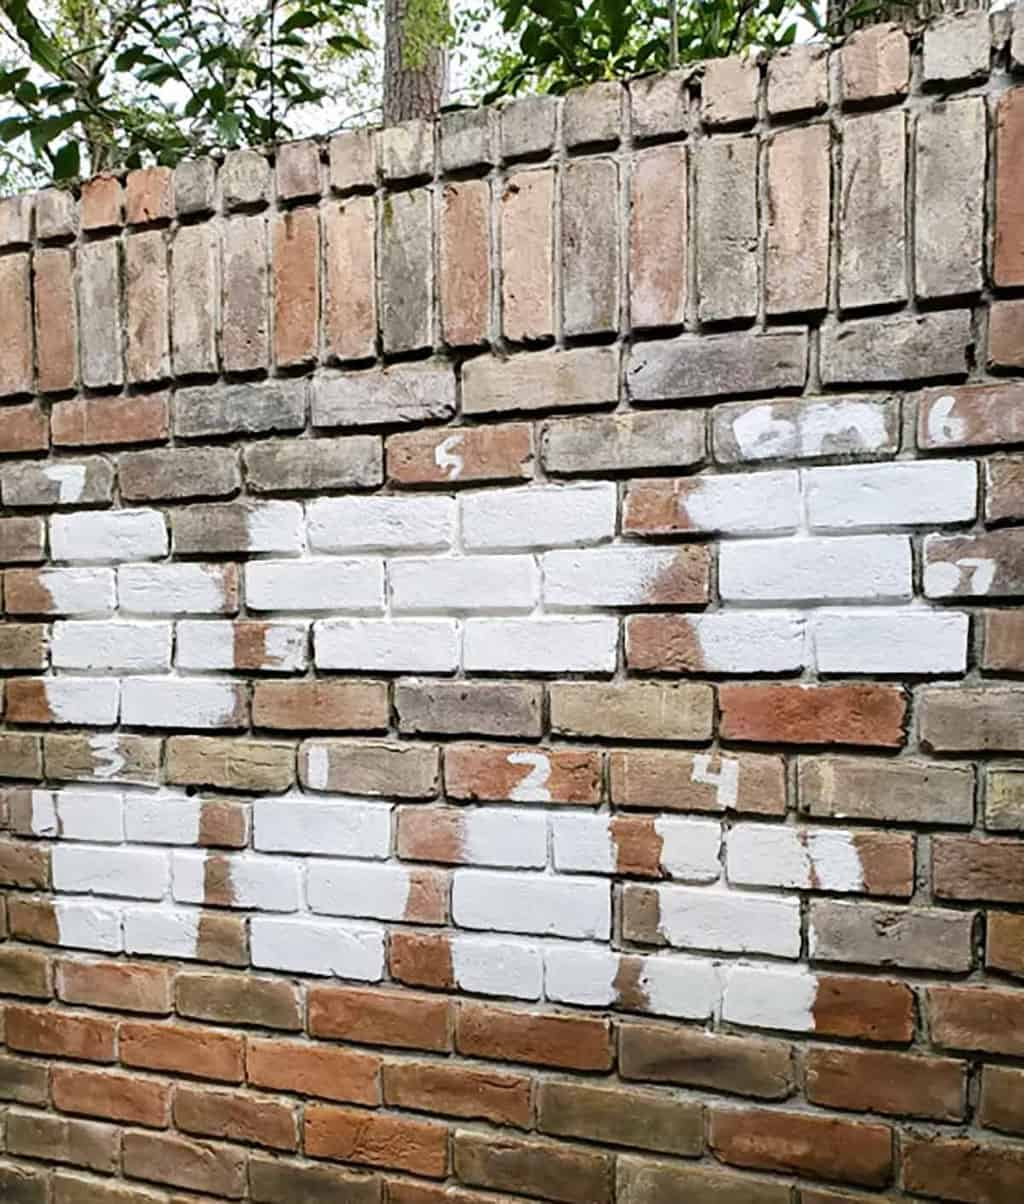 painted white color samples on a brick wall